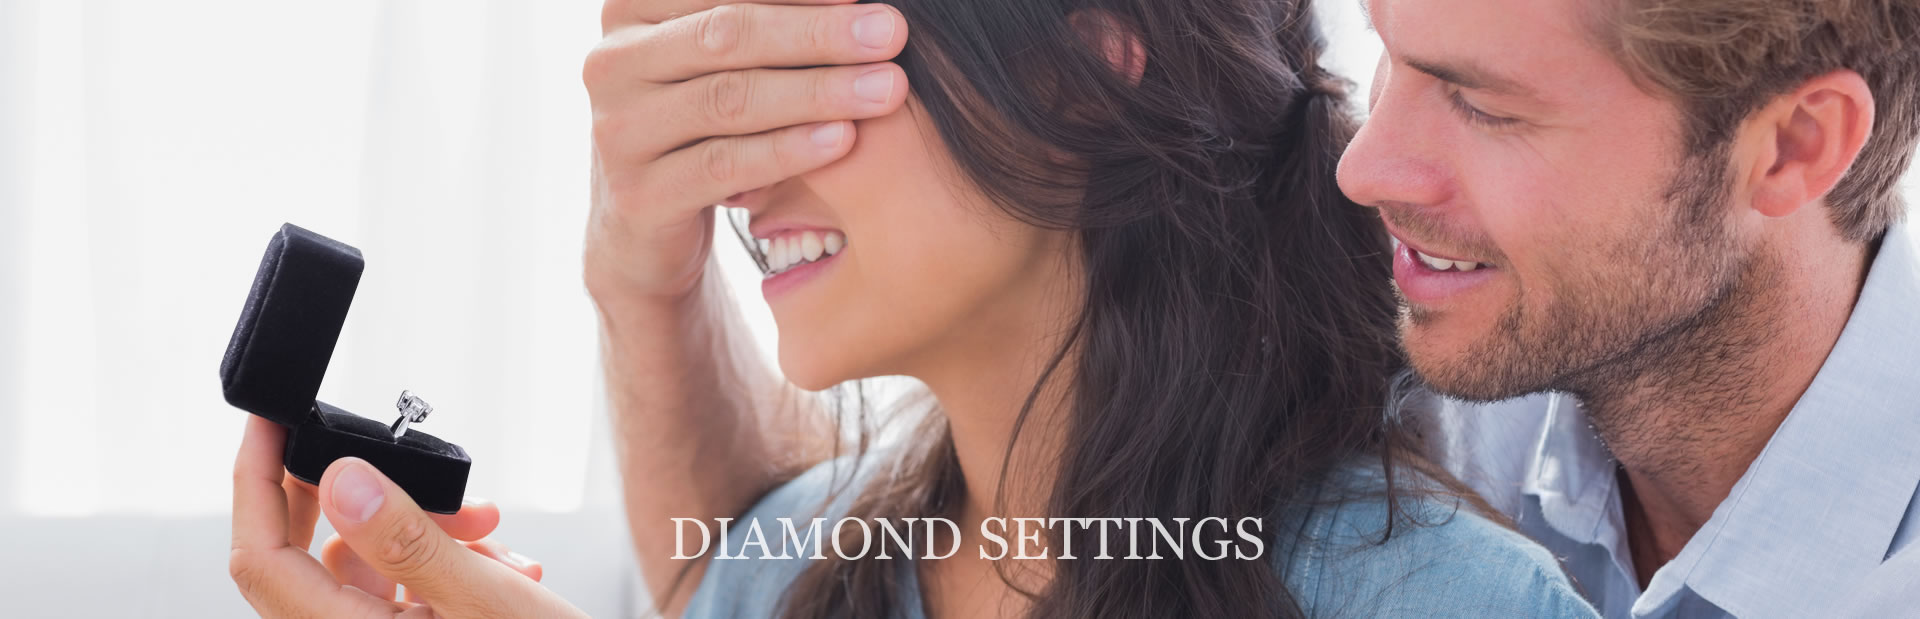 Diamond Settings